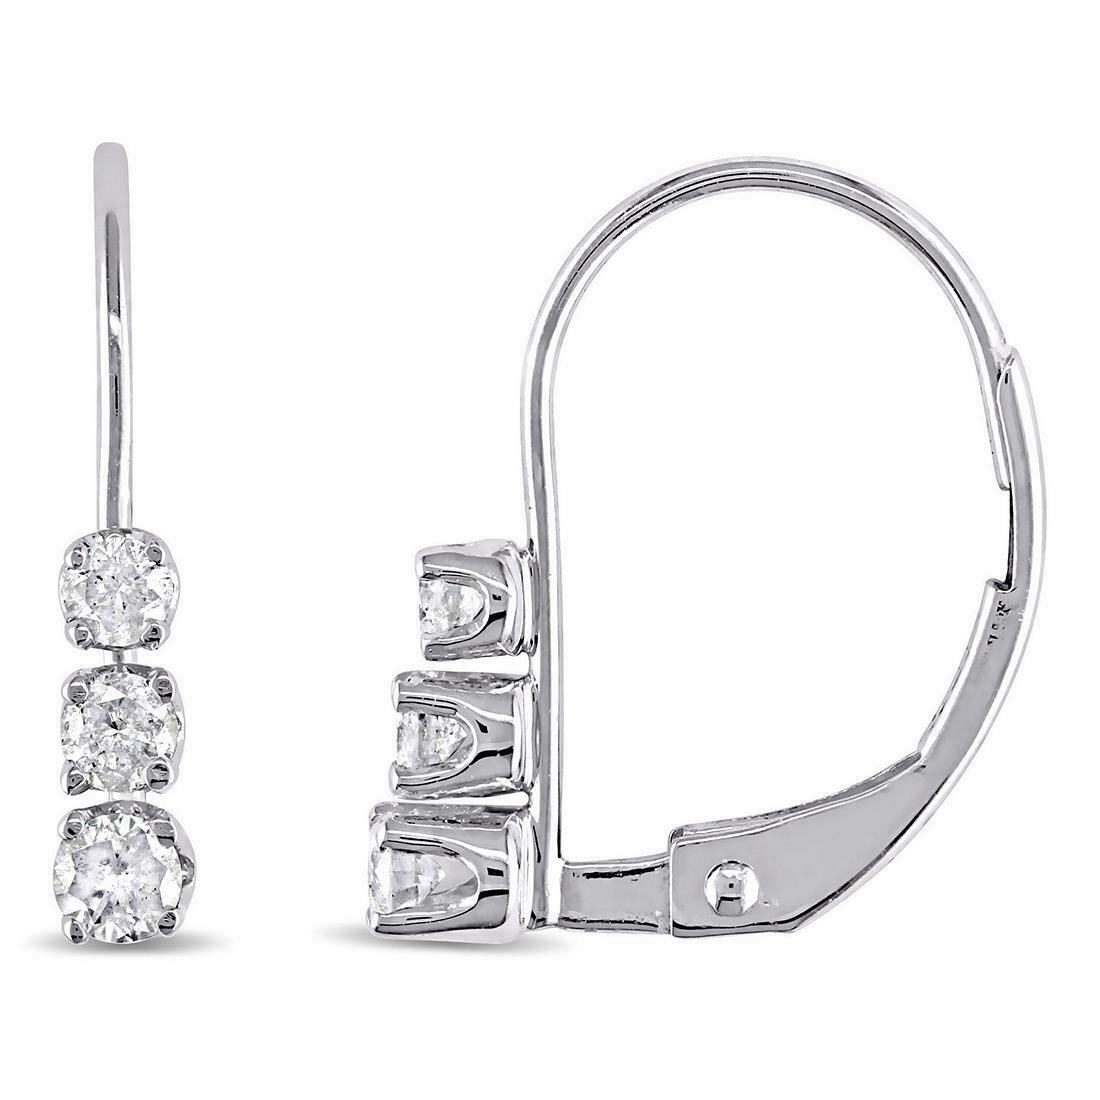 Primary image for 1/2ct 3 Stone Diamond Earrings 14K White Gold Over